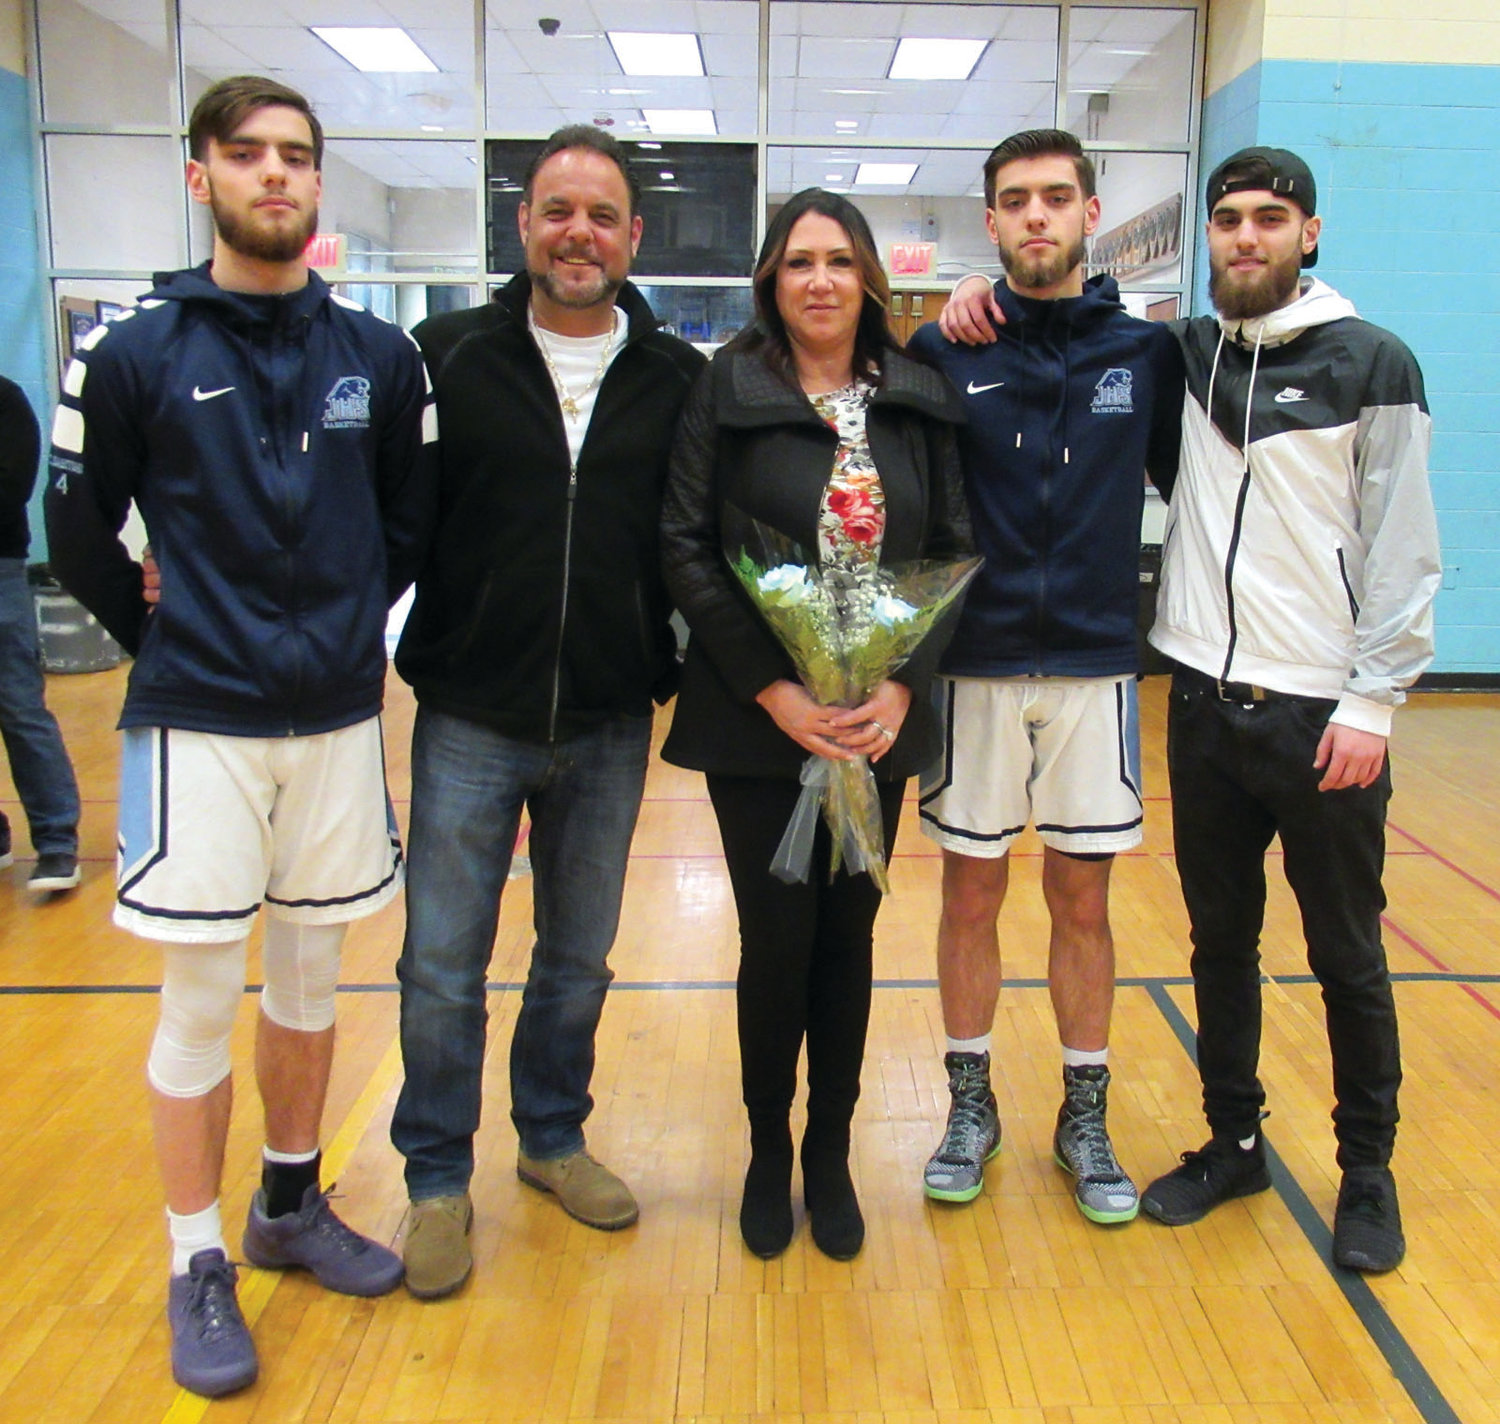 PROUD PARENTS: Mike and Joyce Sabitoni enjoy a lighter moment during Senior Night with their twin sons Cameron and Mike Sabitoni and son Michael Sabitoni.